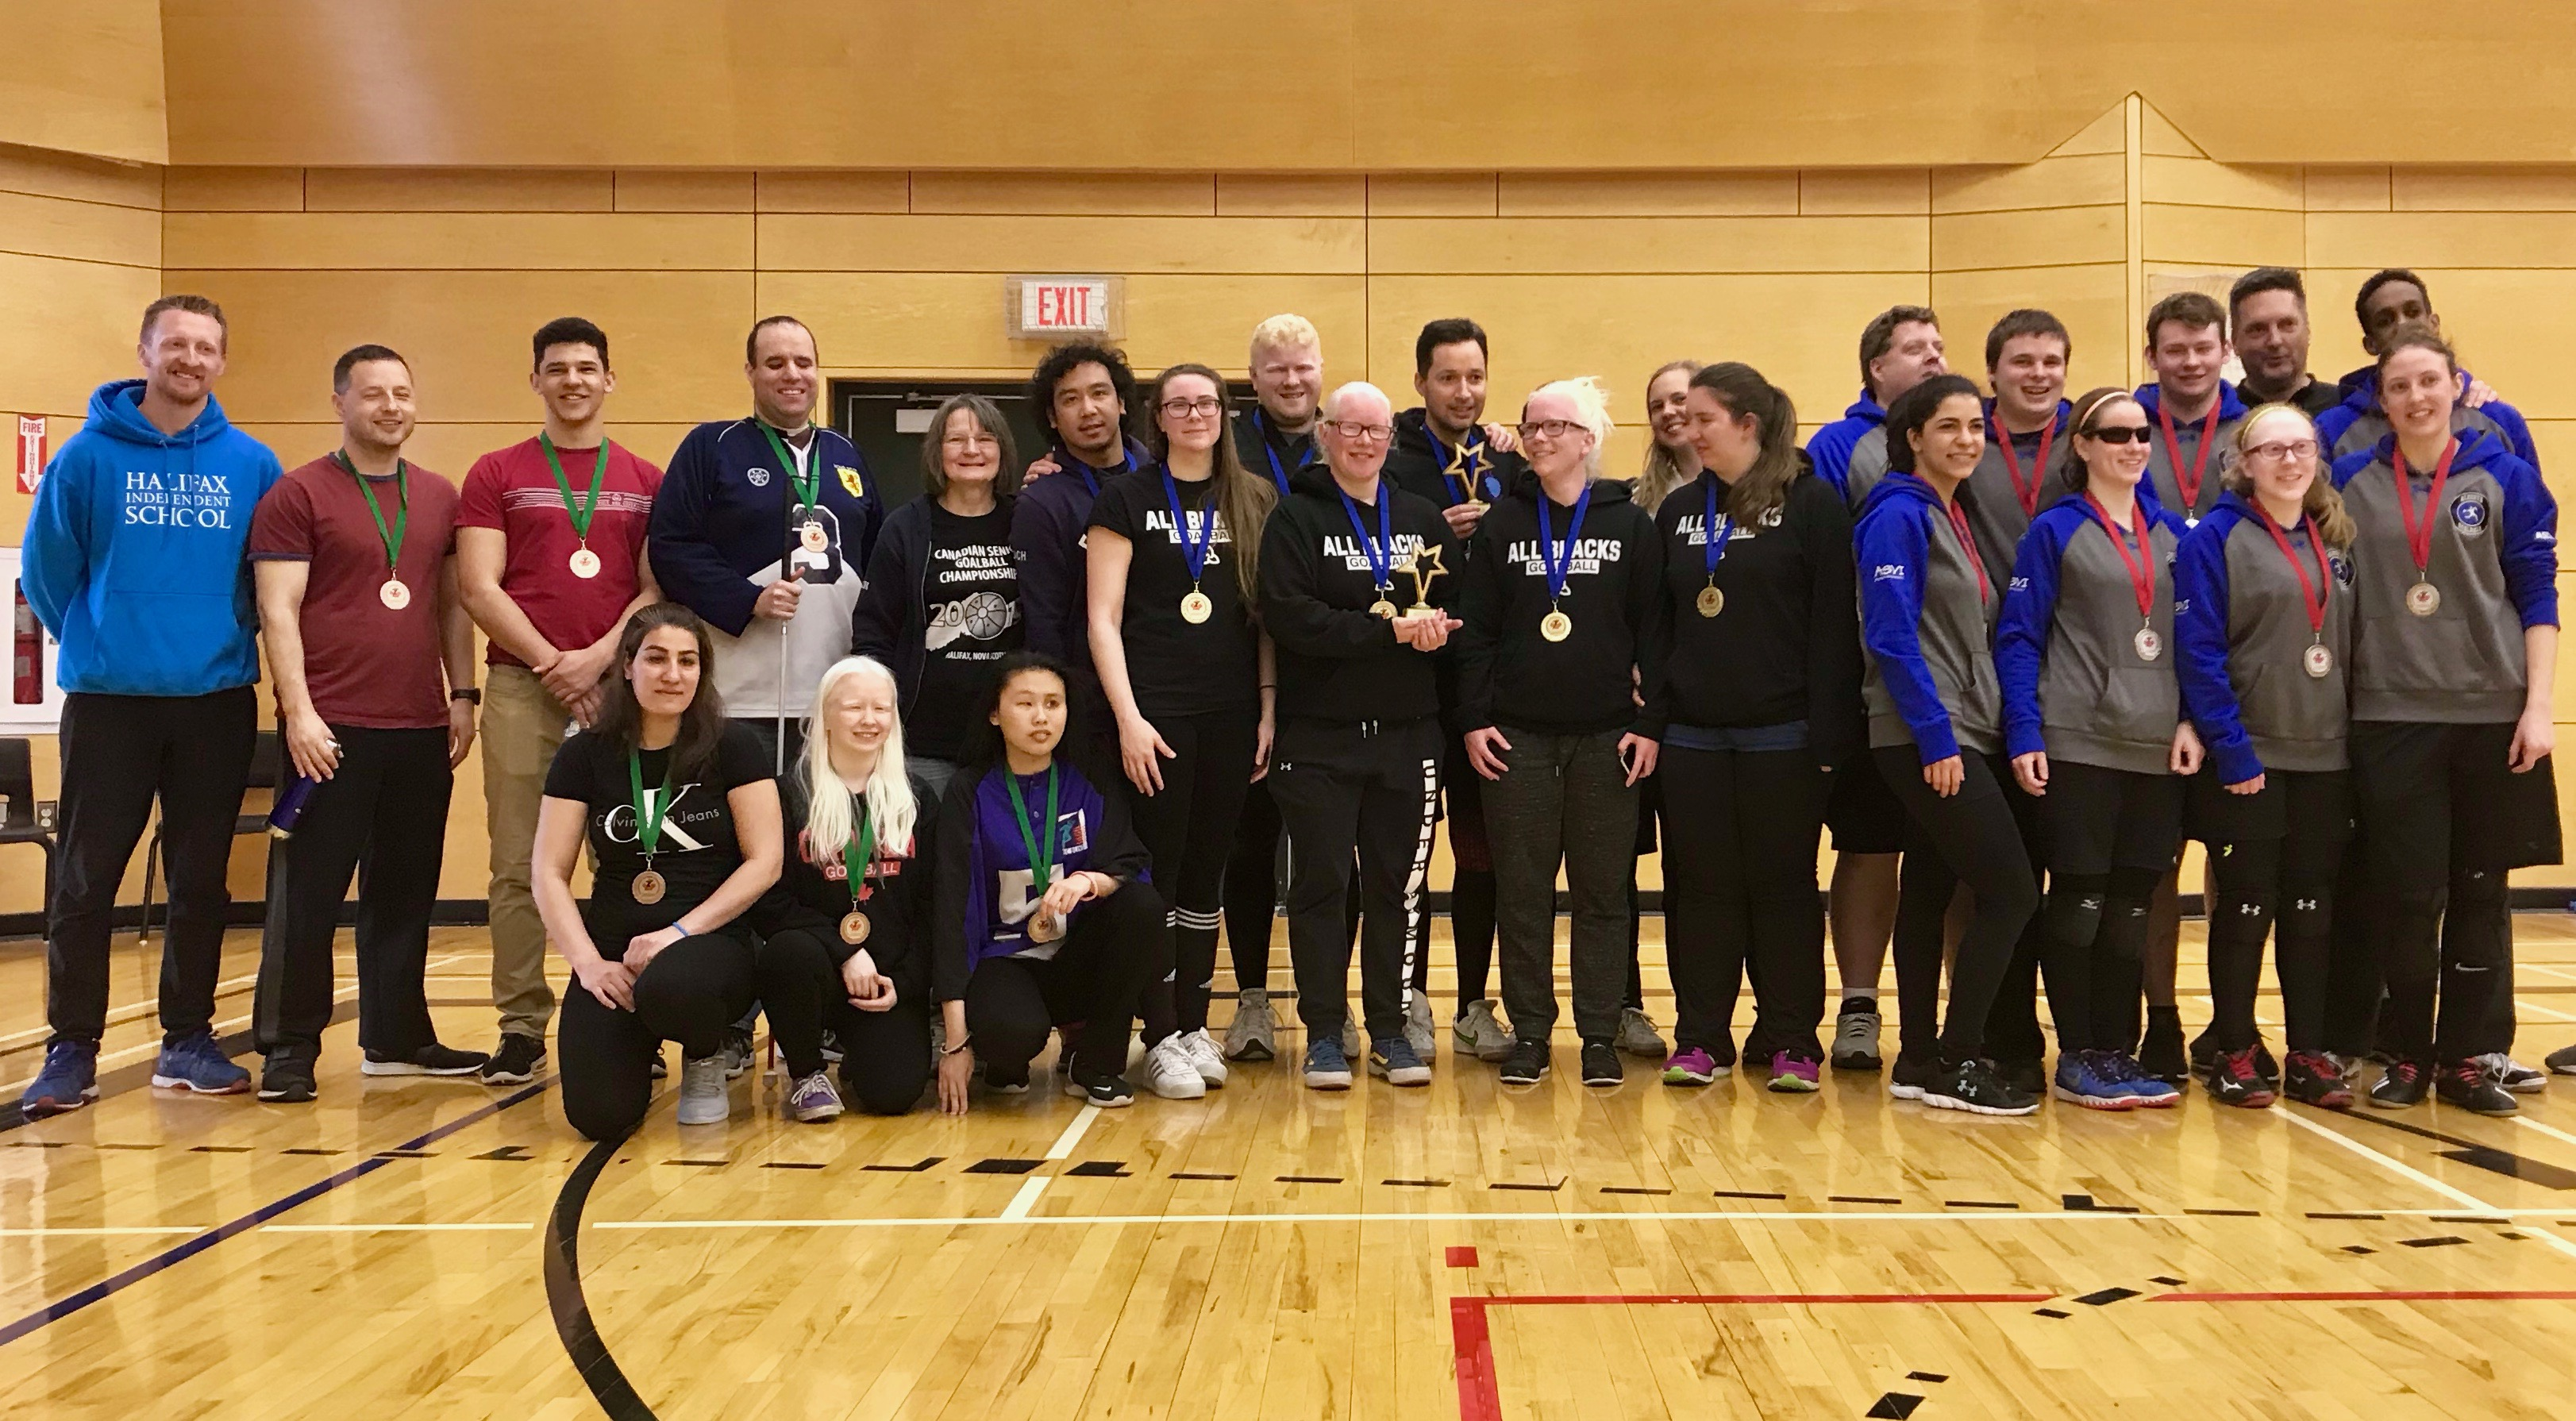 Group photo of all medal winners & coaches